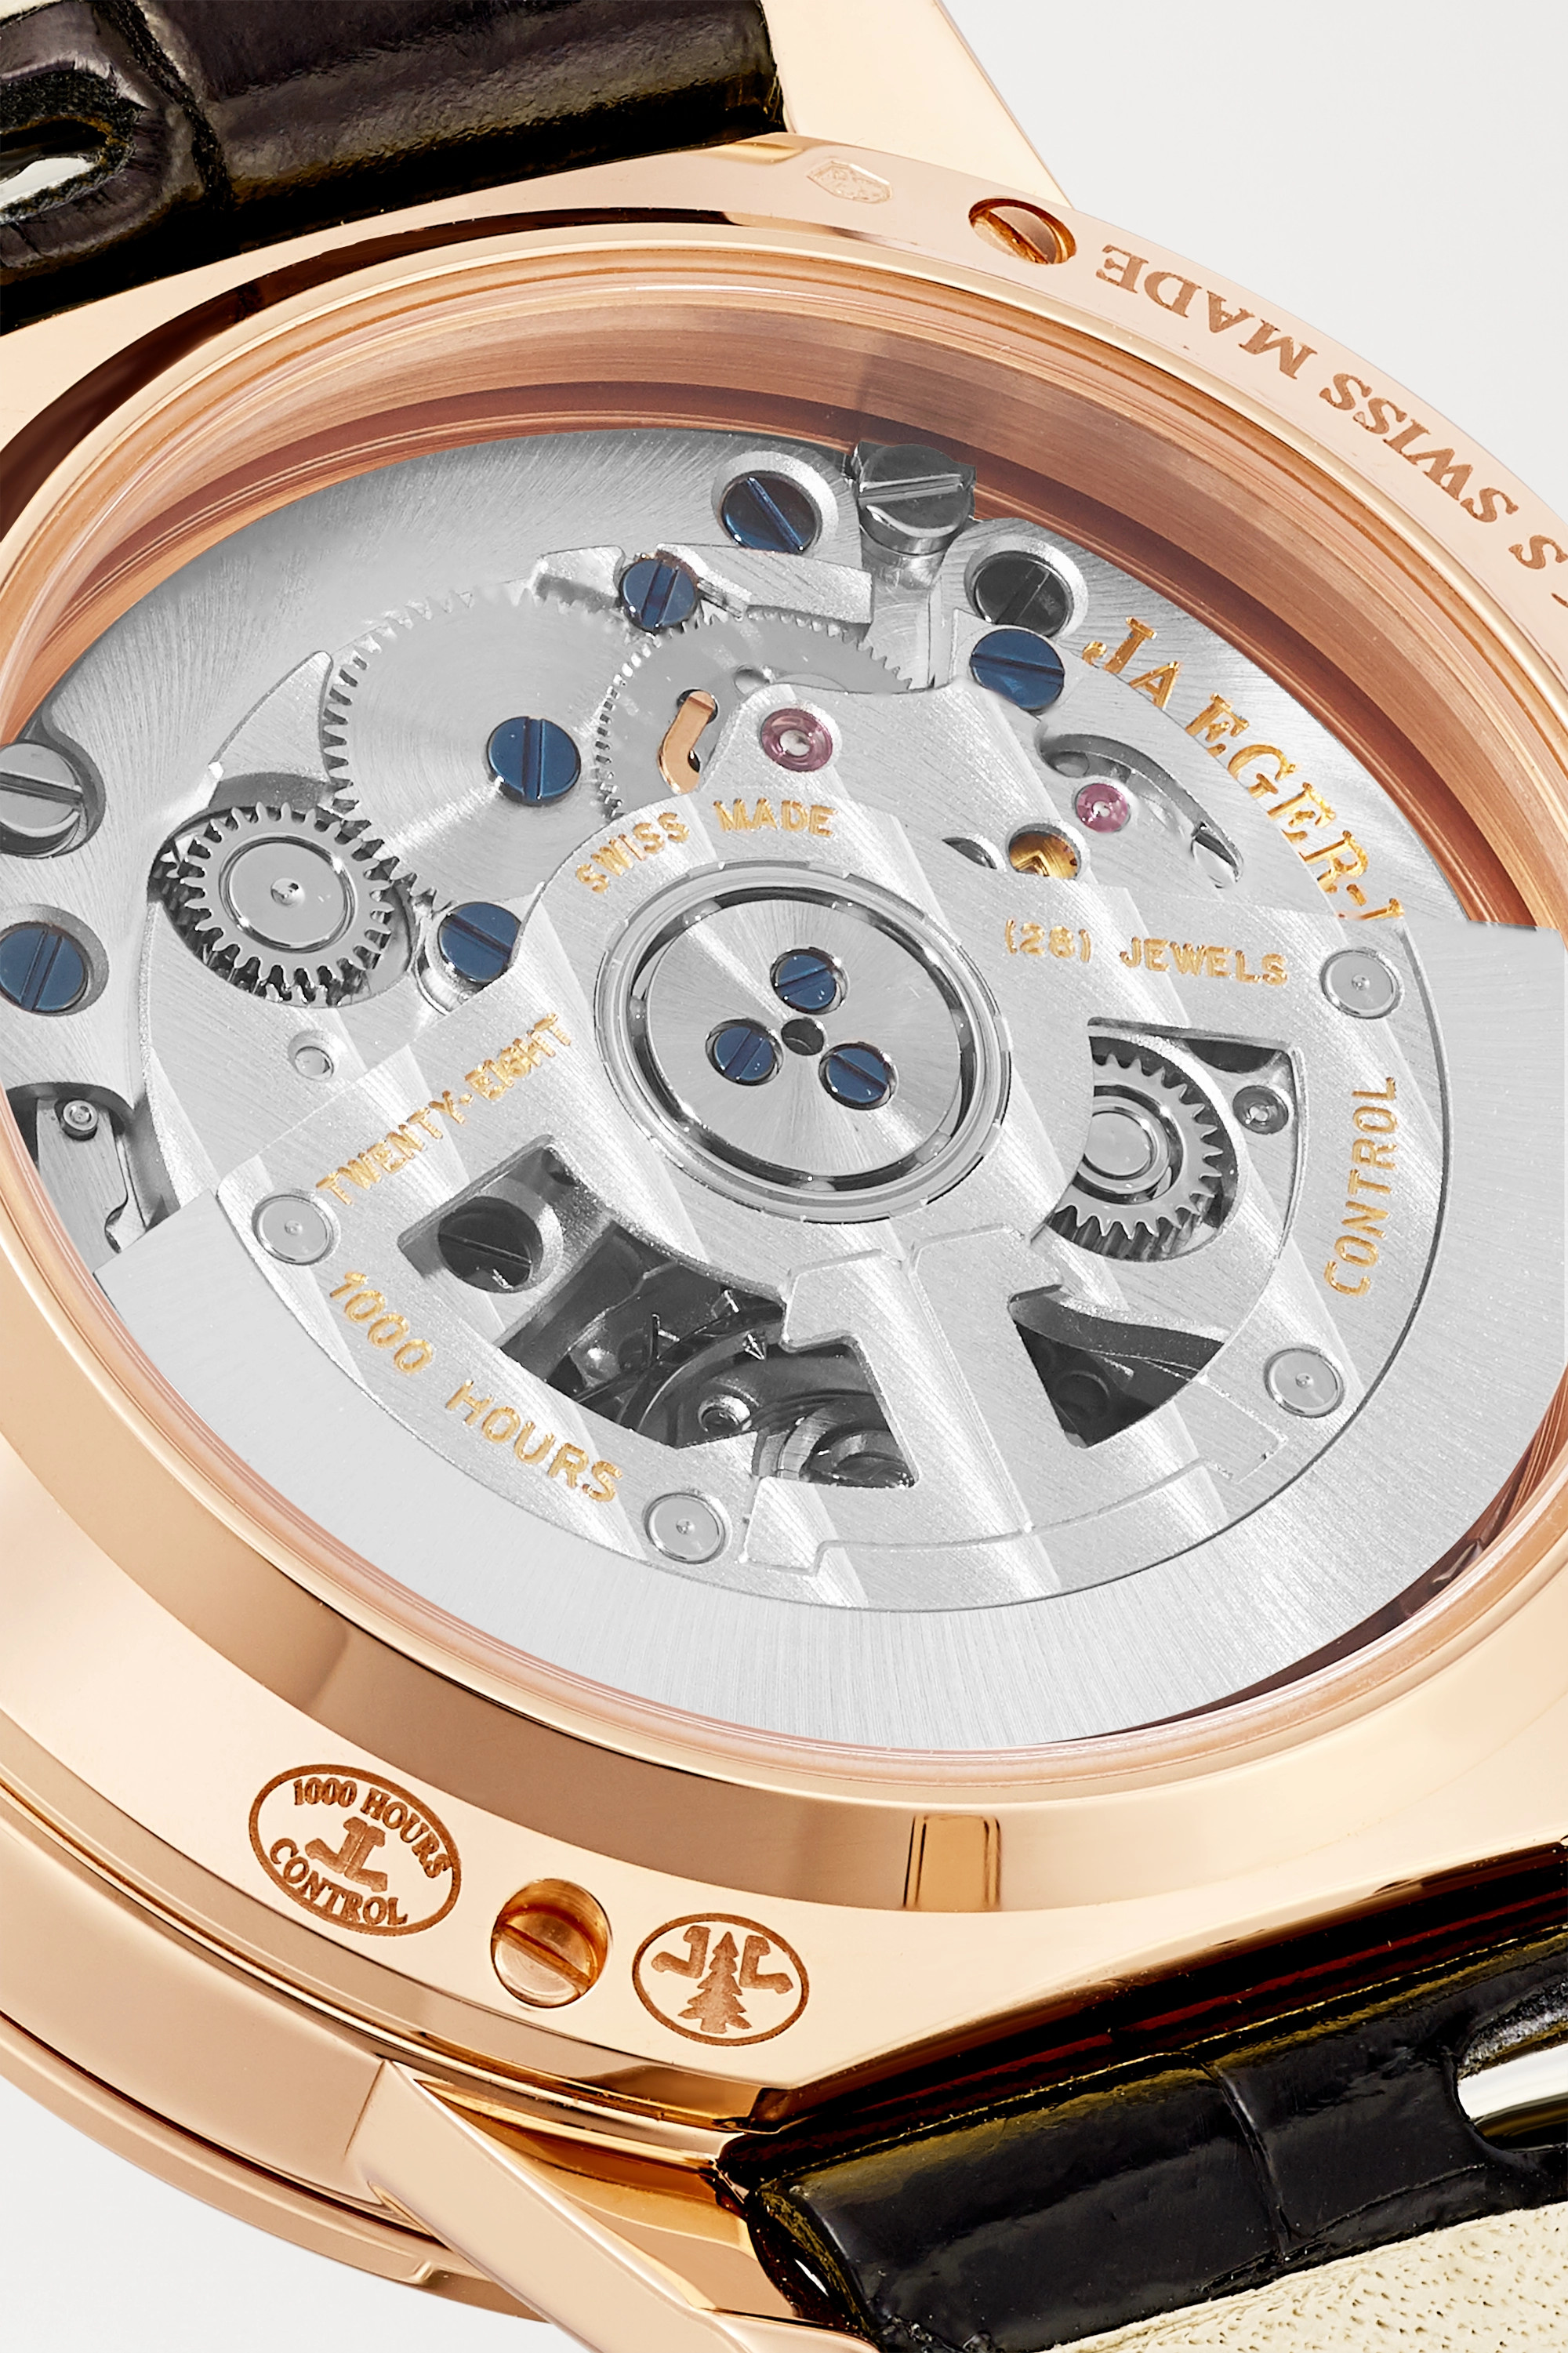 Jaeger-LeCoultre Rendez-Vous Night & Day Automatic Moon-Phase small 29mm rose gold, alligator and diamond watch